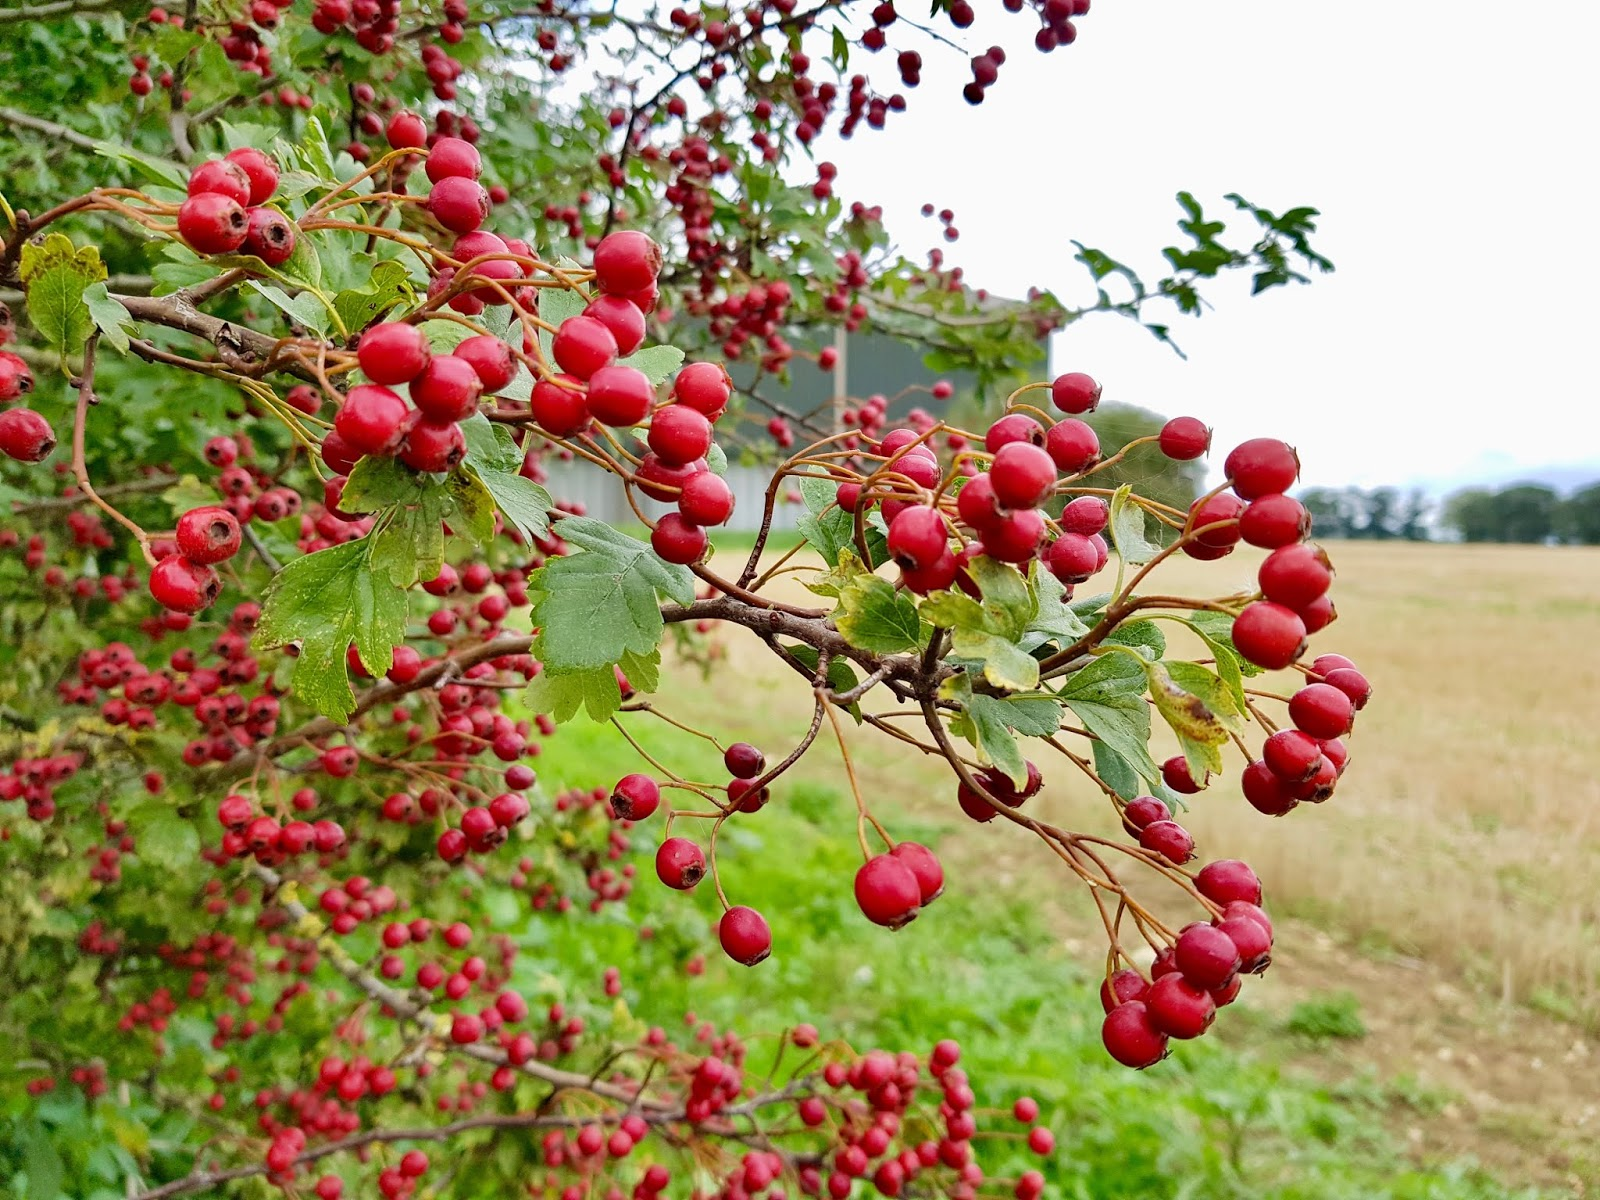 red hawthorn berries on a bush, hedgerow in background